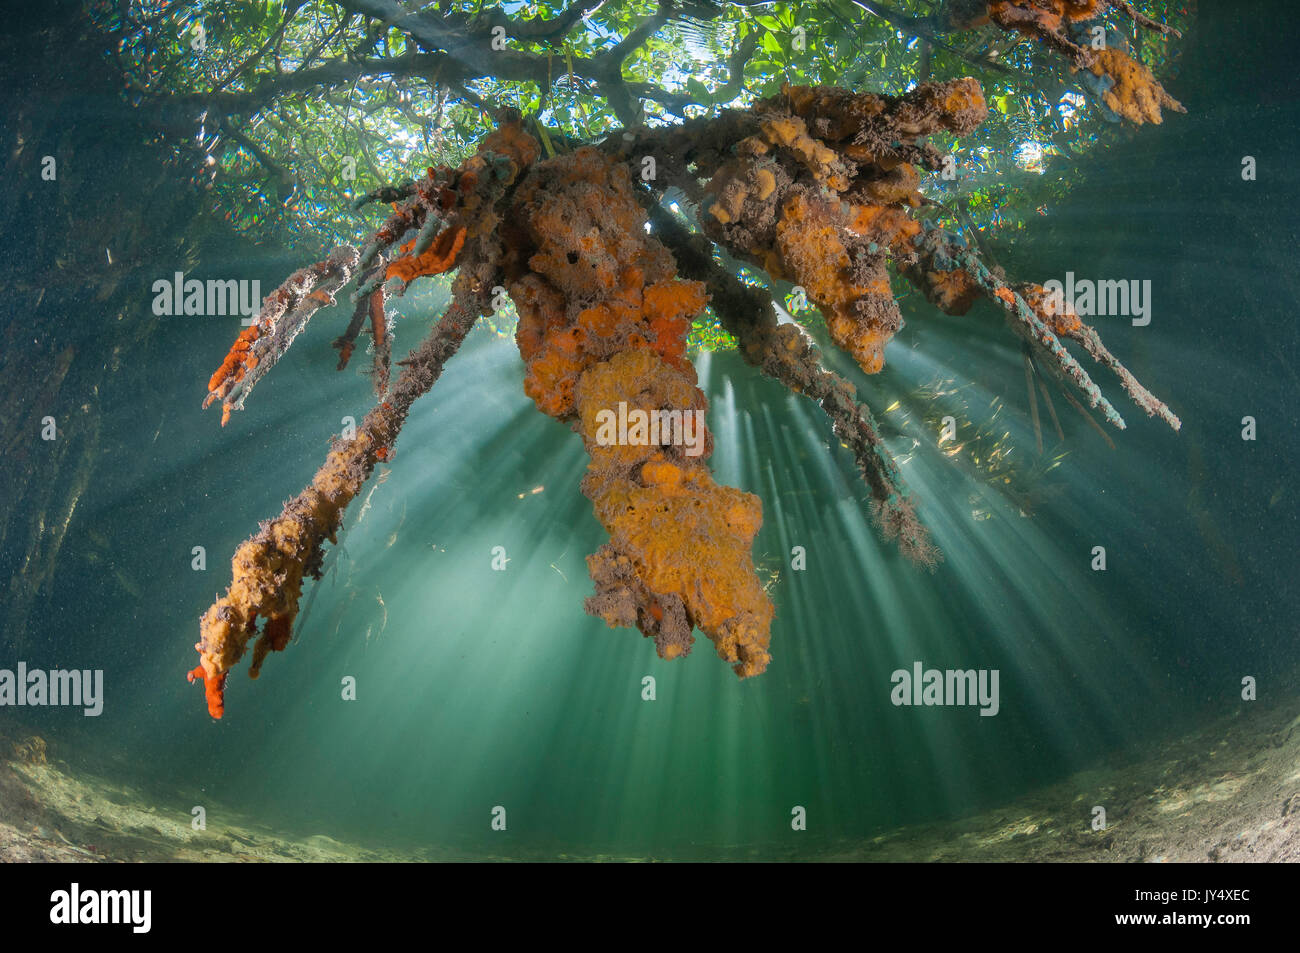 Looking up at soft corals and trees as sun rays filter through the water in the mangrove area of Gardens of the Queens, Cuba. - Stock Image